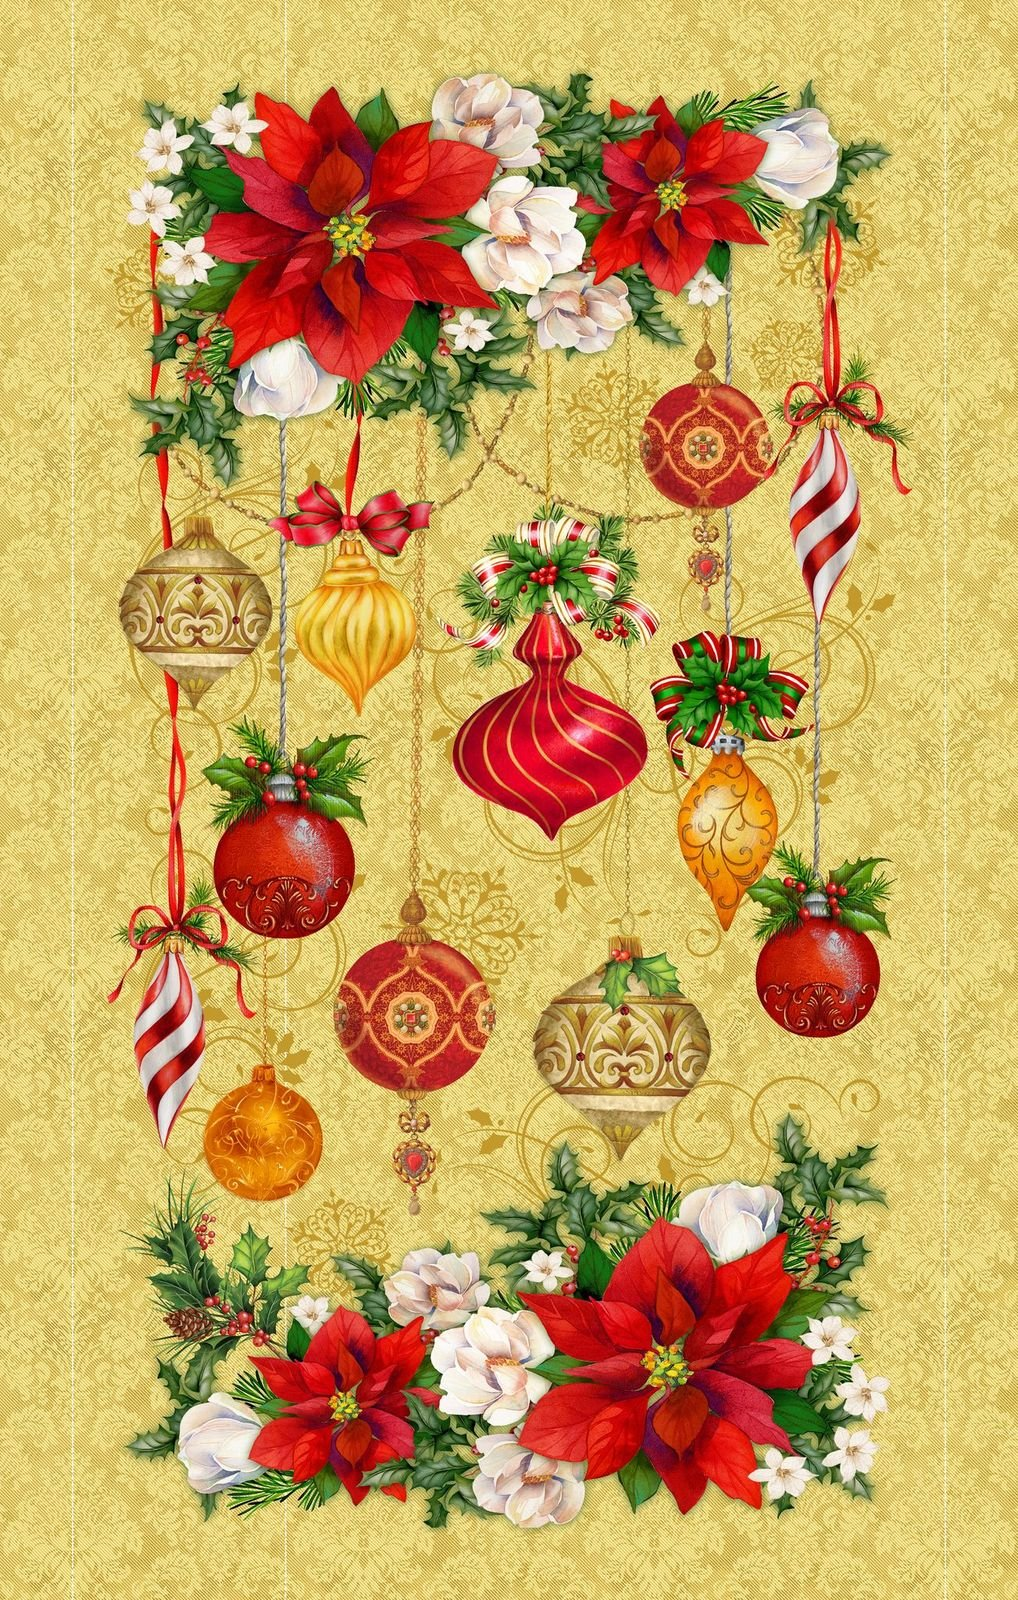 HG-Christmas Legend 9523P-33 Gold - Floral and Ornament Panel